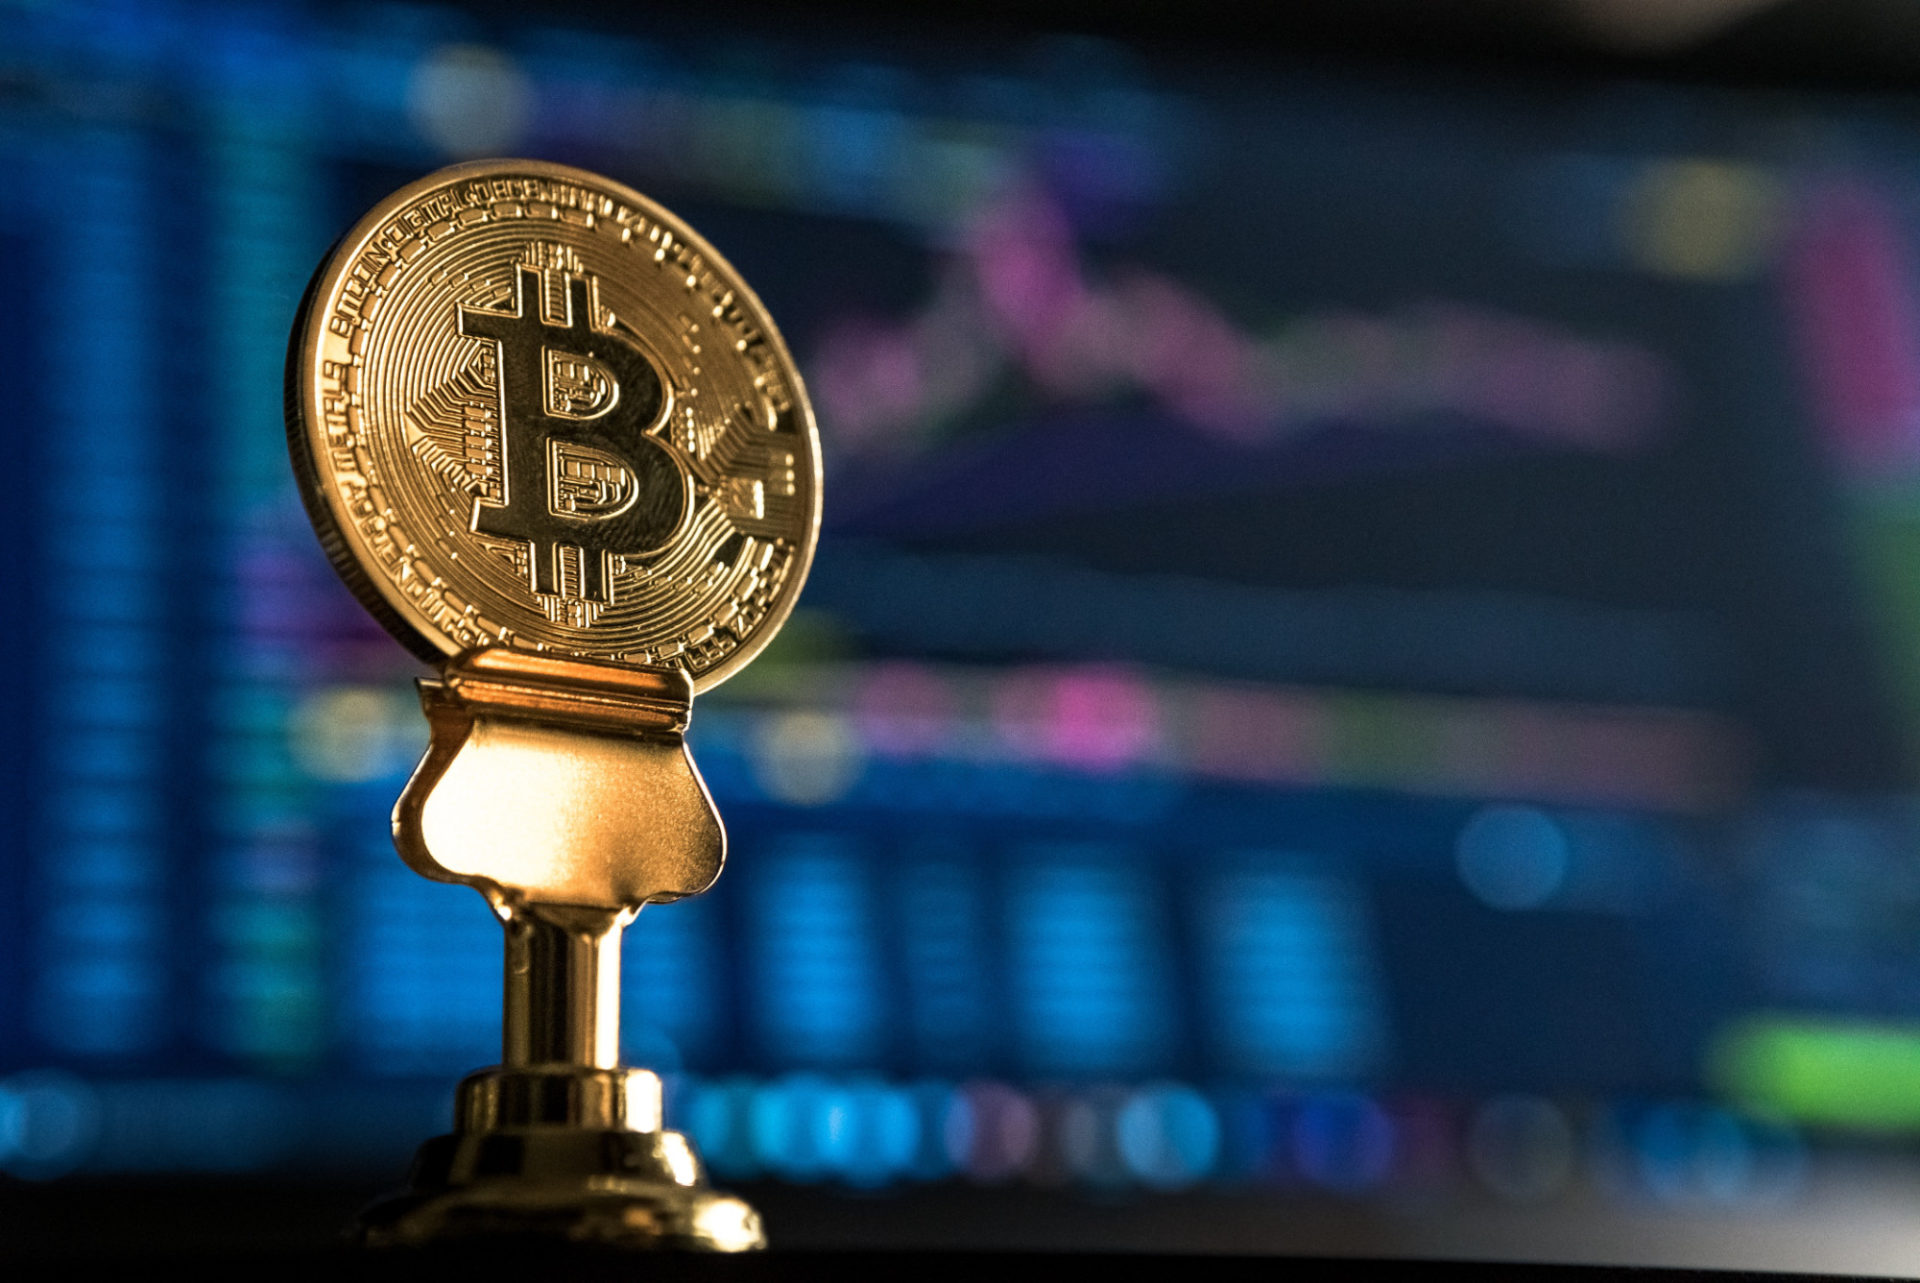 Bitcoin Will Recover Without 'Mainstream Breakout' in 2019, Says Fundstrat